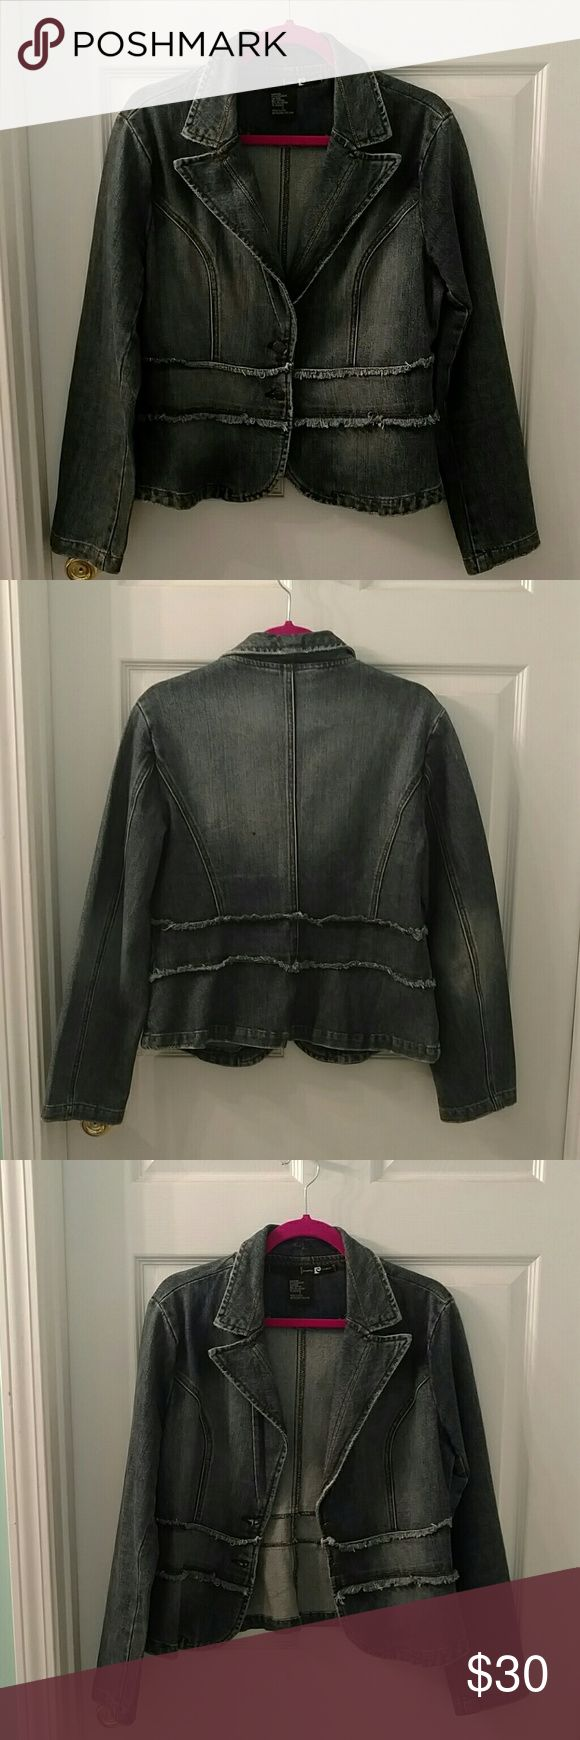 Pierre Cardin jean jacket. Looks new! Long sleeve denim jacket. 2 button front. Very stylish!! Pierre Cardin Jackets & Coats Jean Jackets